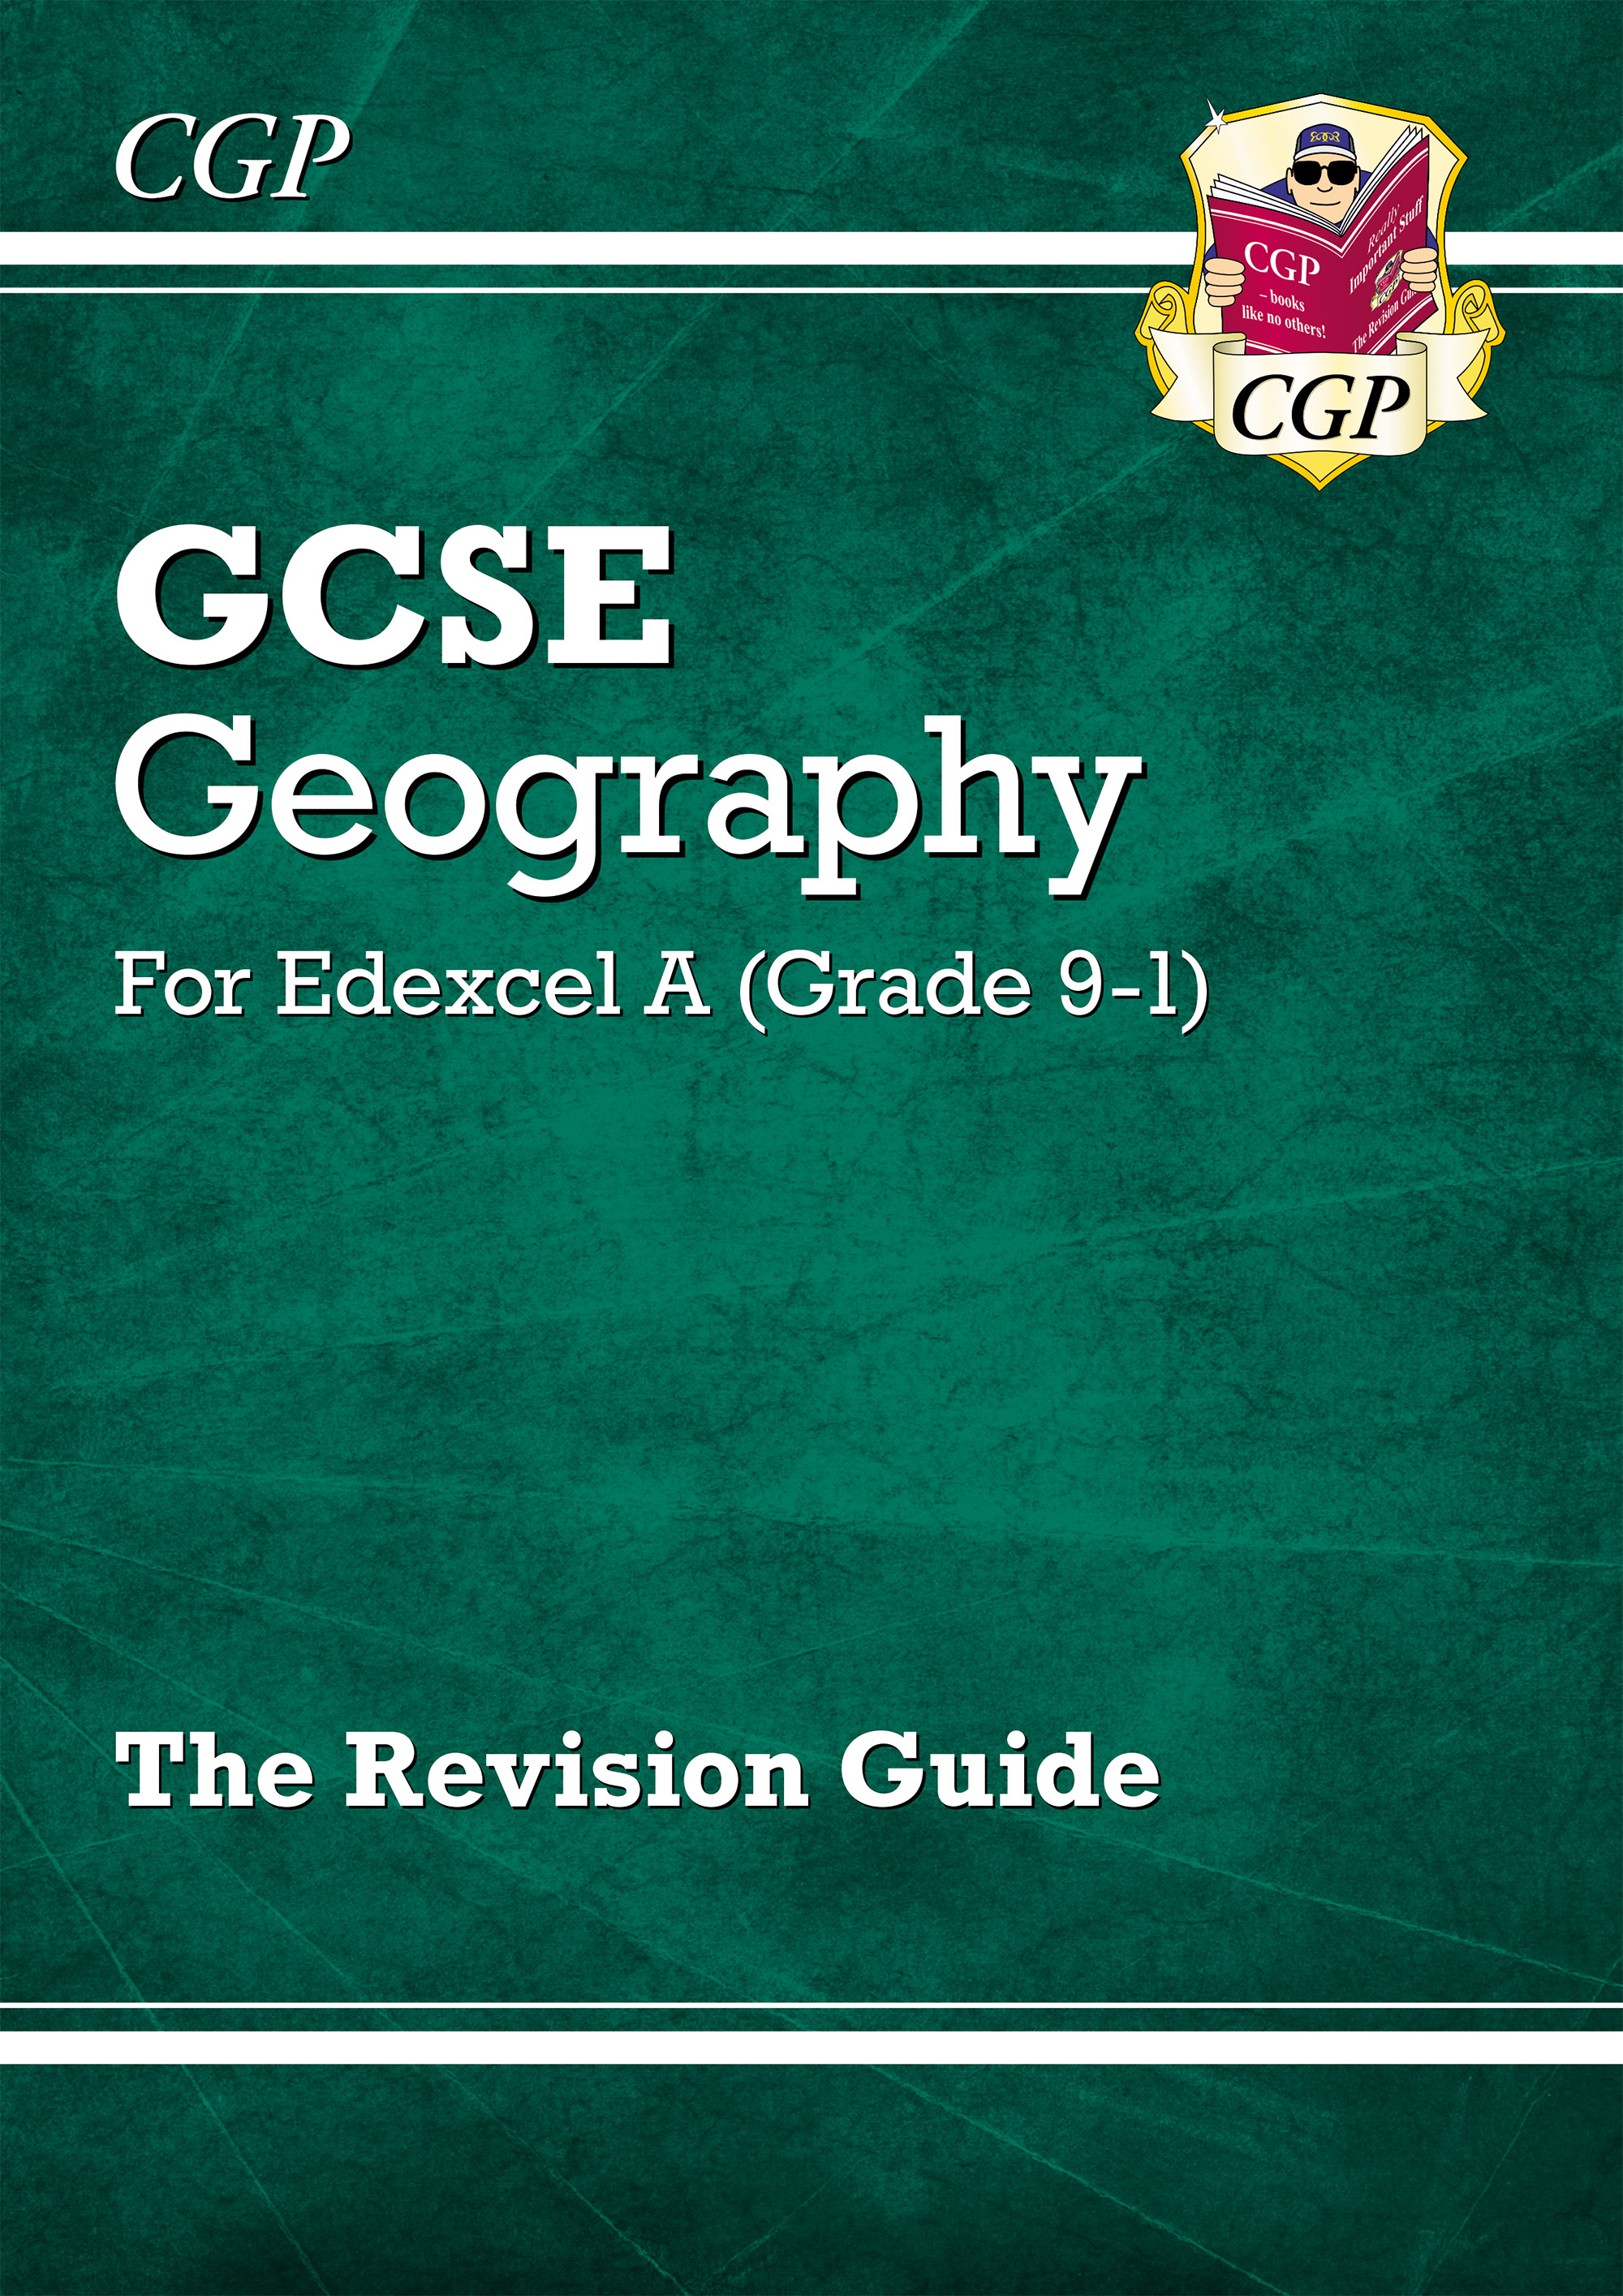 GEAR41D - Grade 9-1 GCSE Geography Edexcel A - Revision Guide Online Edition